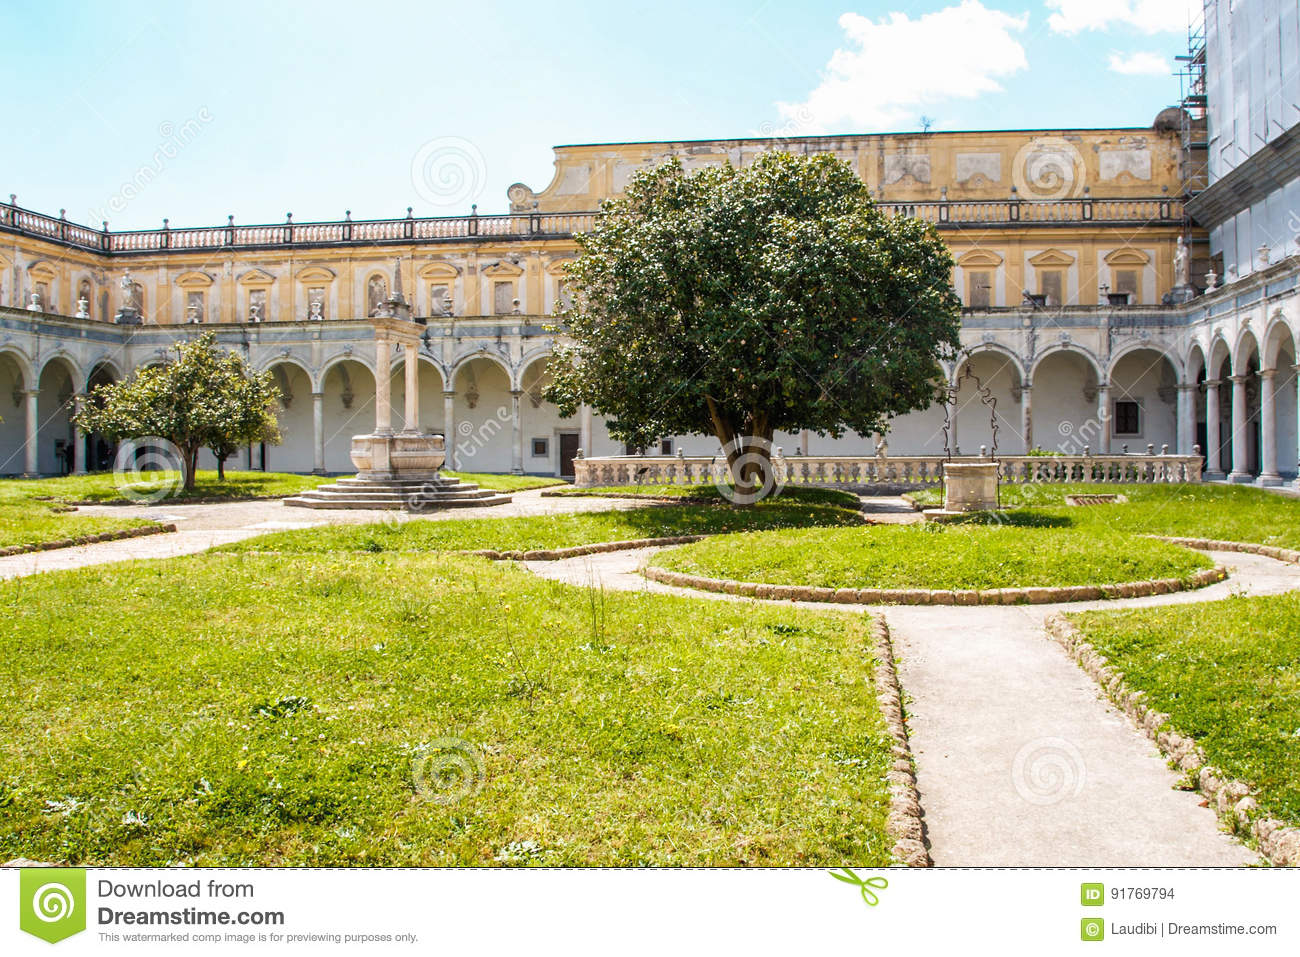 The Cloister Of San Martino Chartreuse In Naples Stock Photo Image Of Creepy Death 91769794